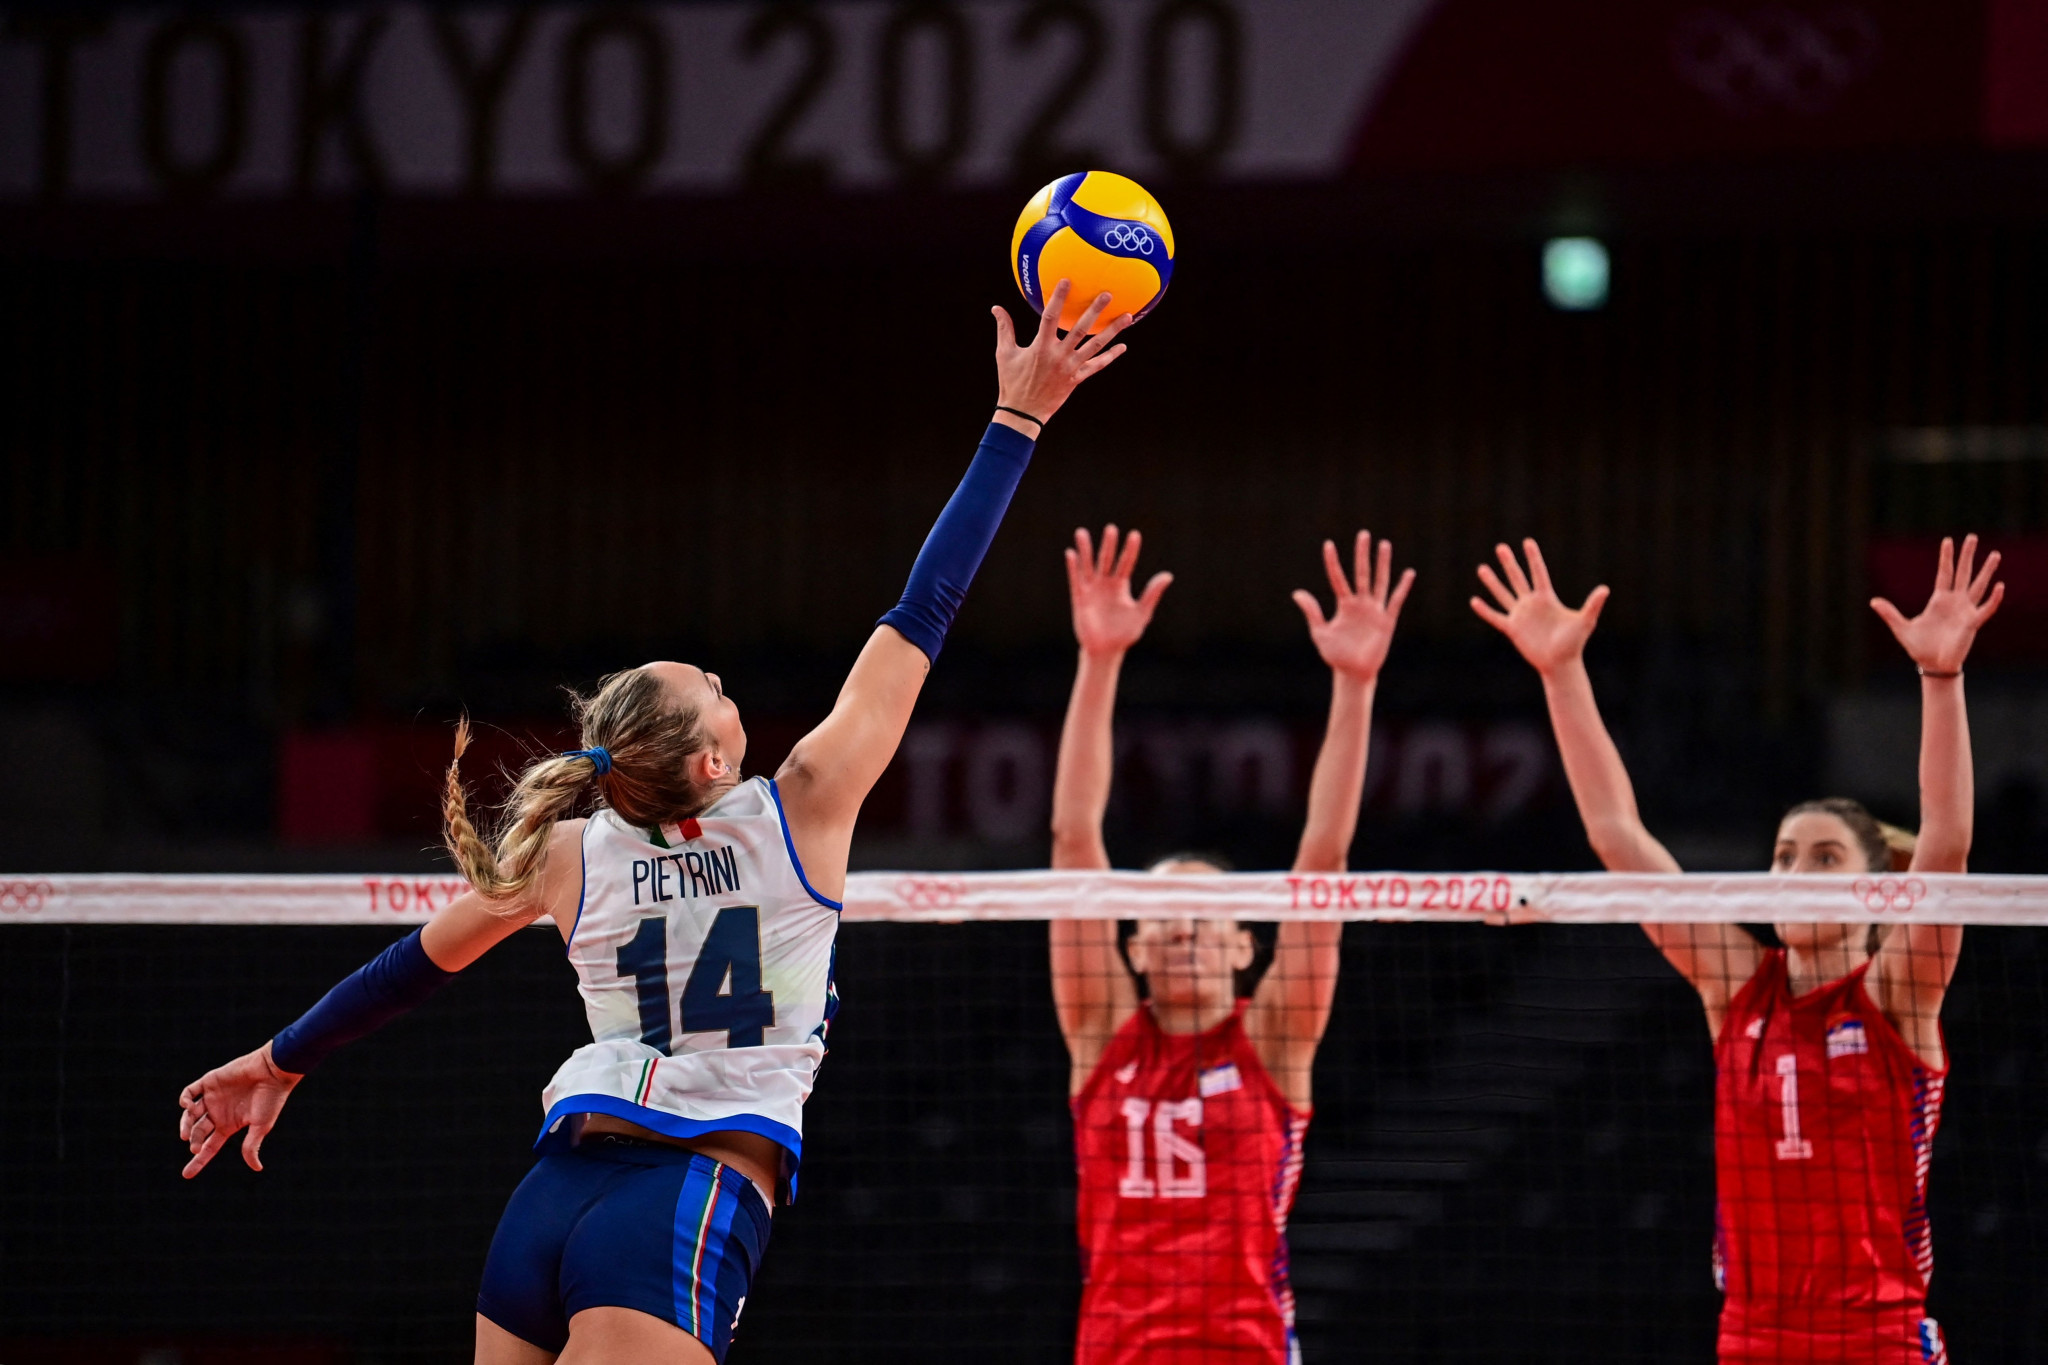 Serbia beat Italy in straight sets in the quarter-finals at the Tokyo 2020 Olympic Games ©Getty Images